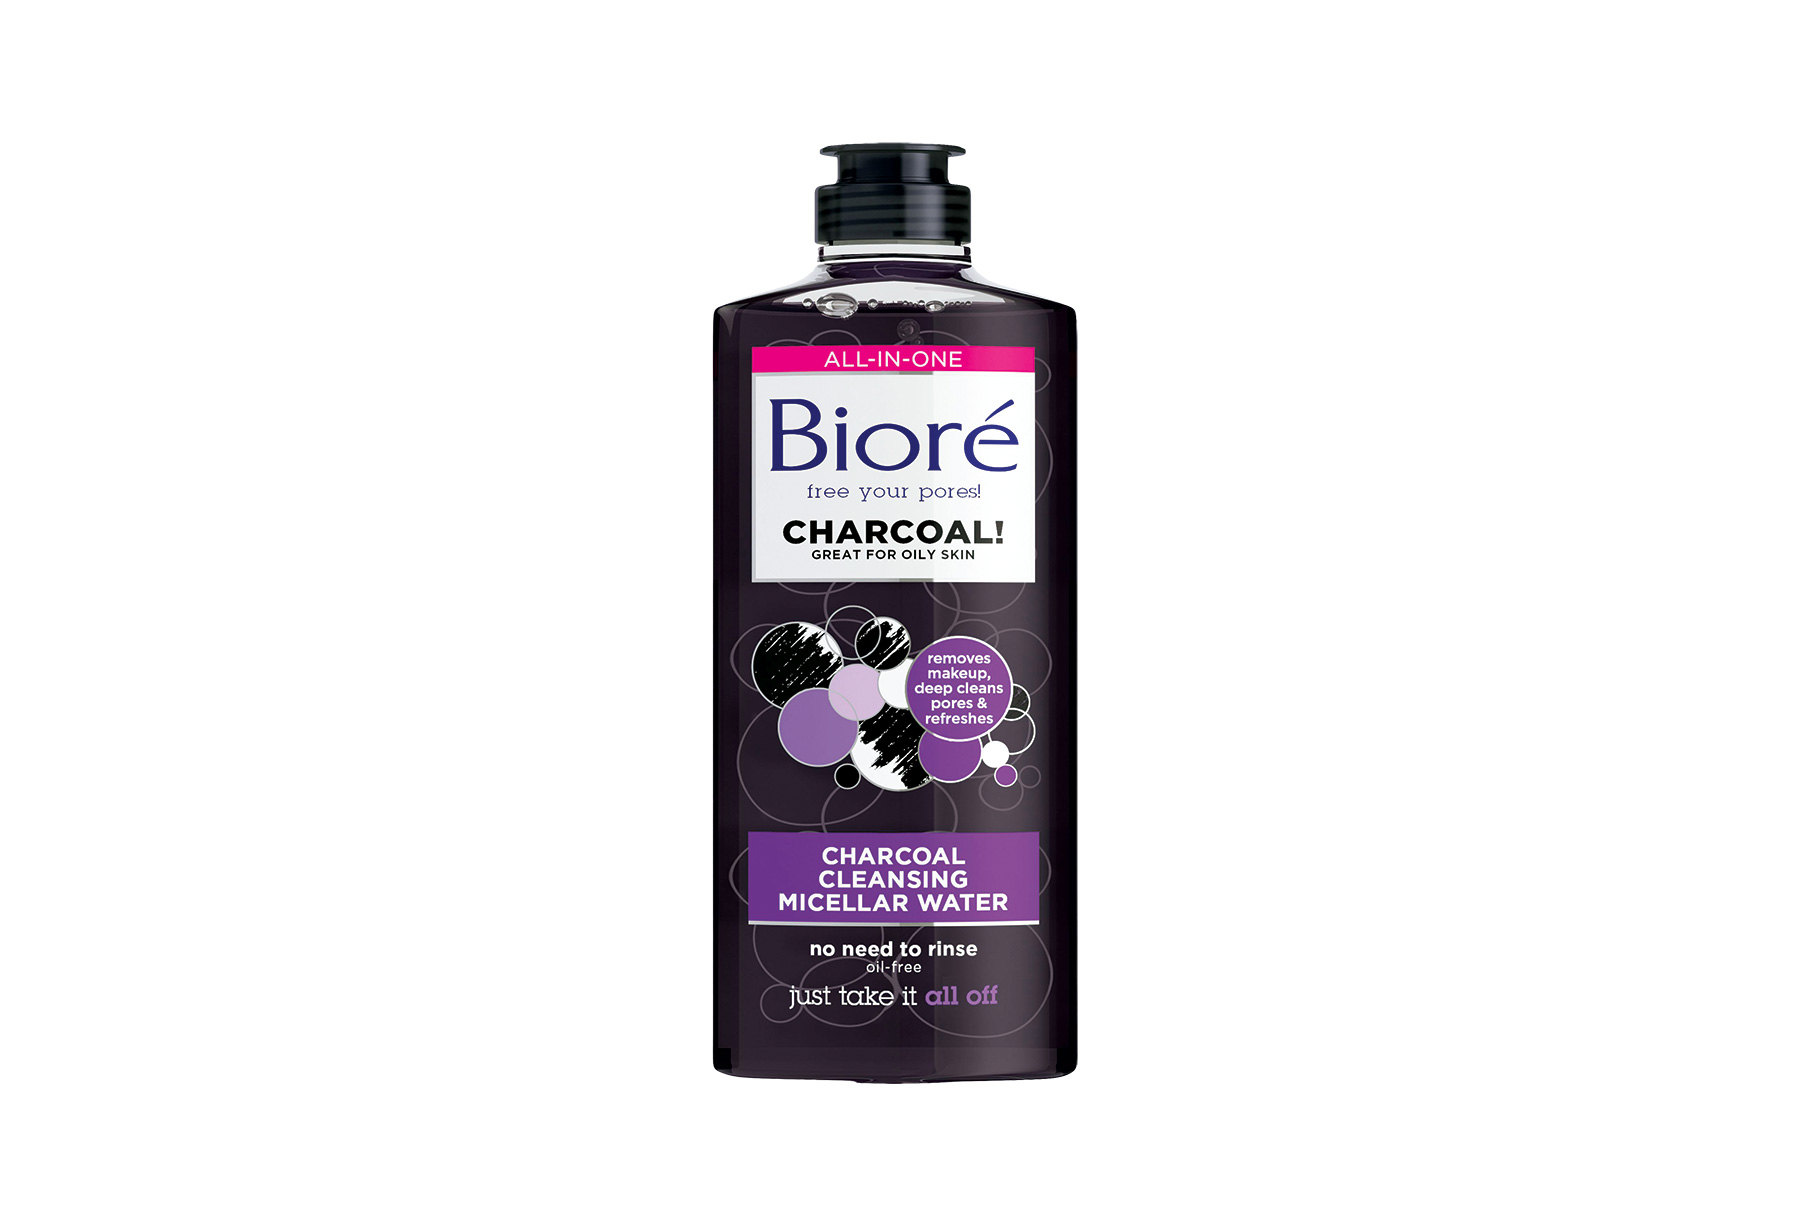 Bioré Charcoal Cleansing Micellar Water  (0718BPS)